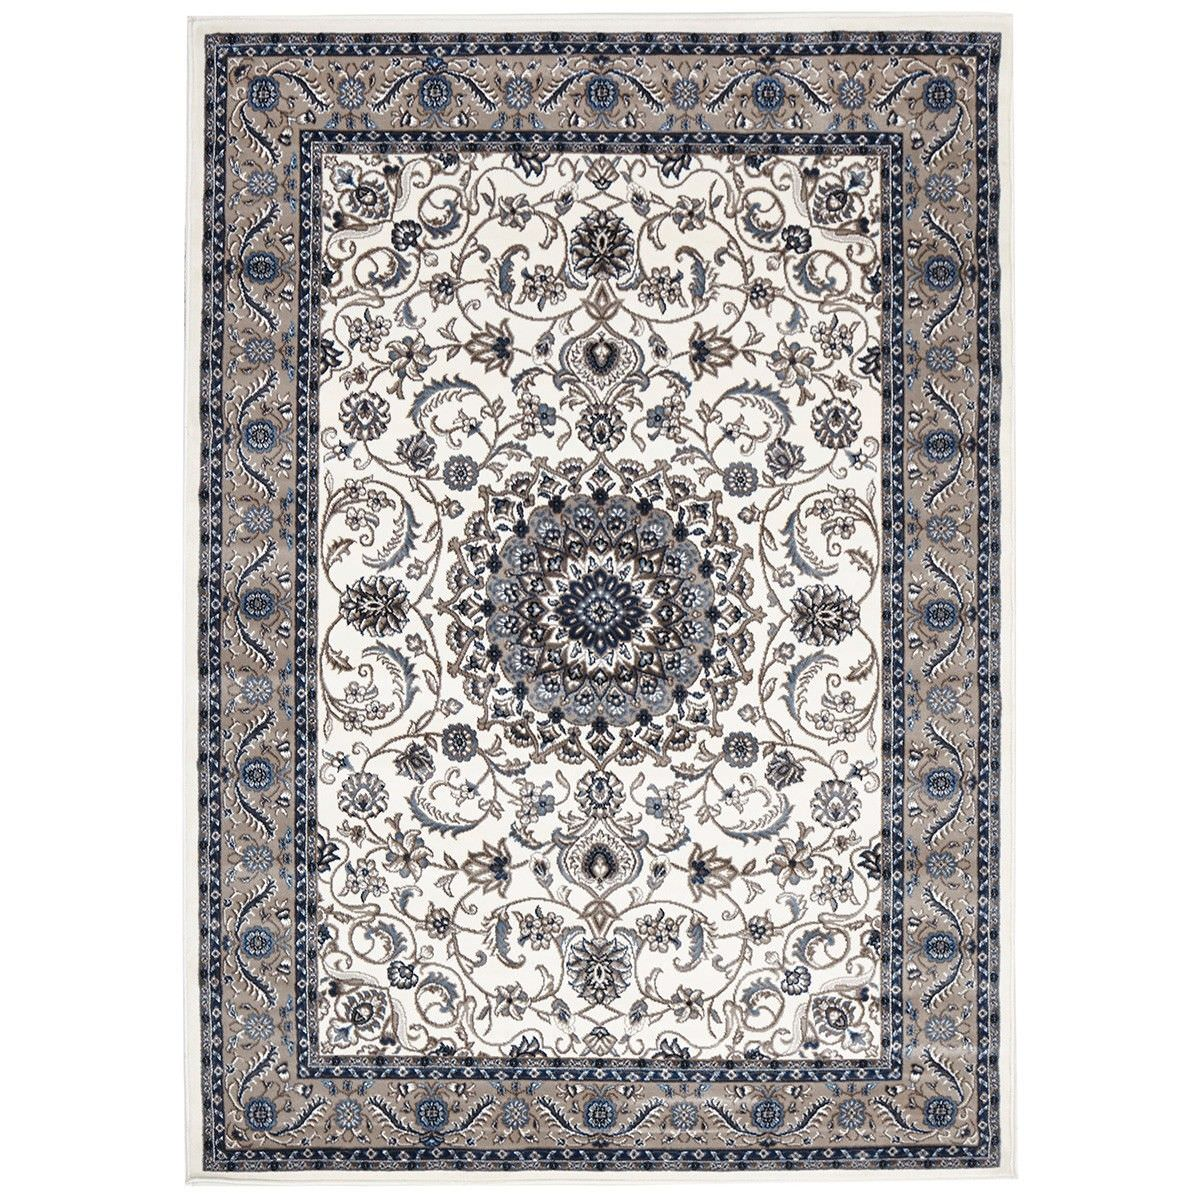 Sydney Medallion Turkish Made Oriental Rug, 230x160cm, White / Beige